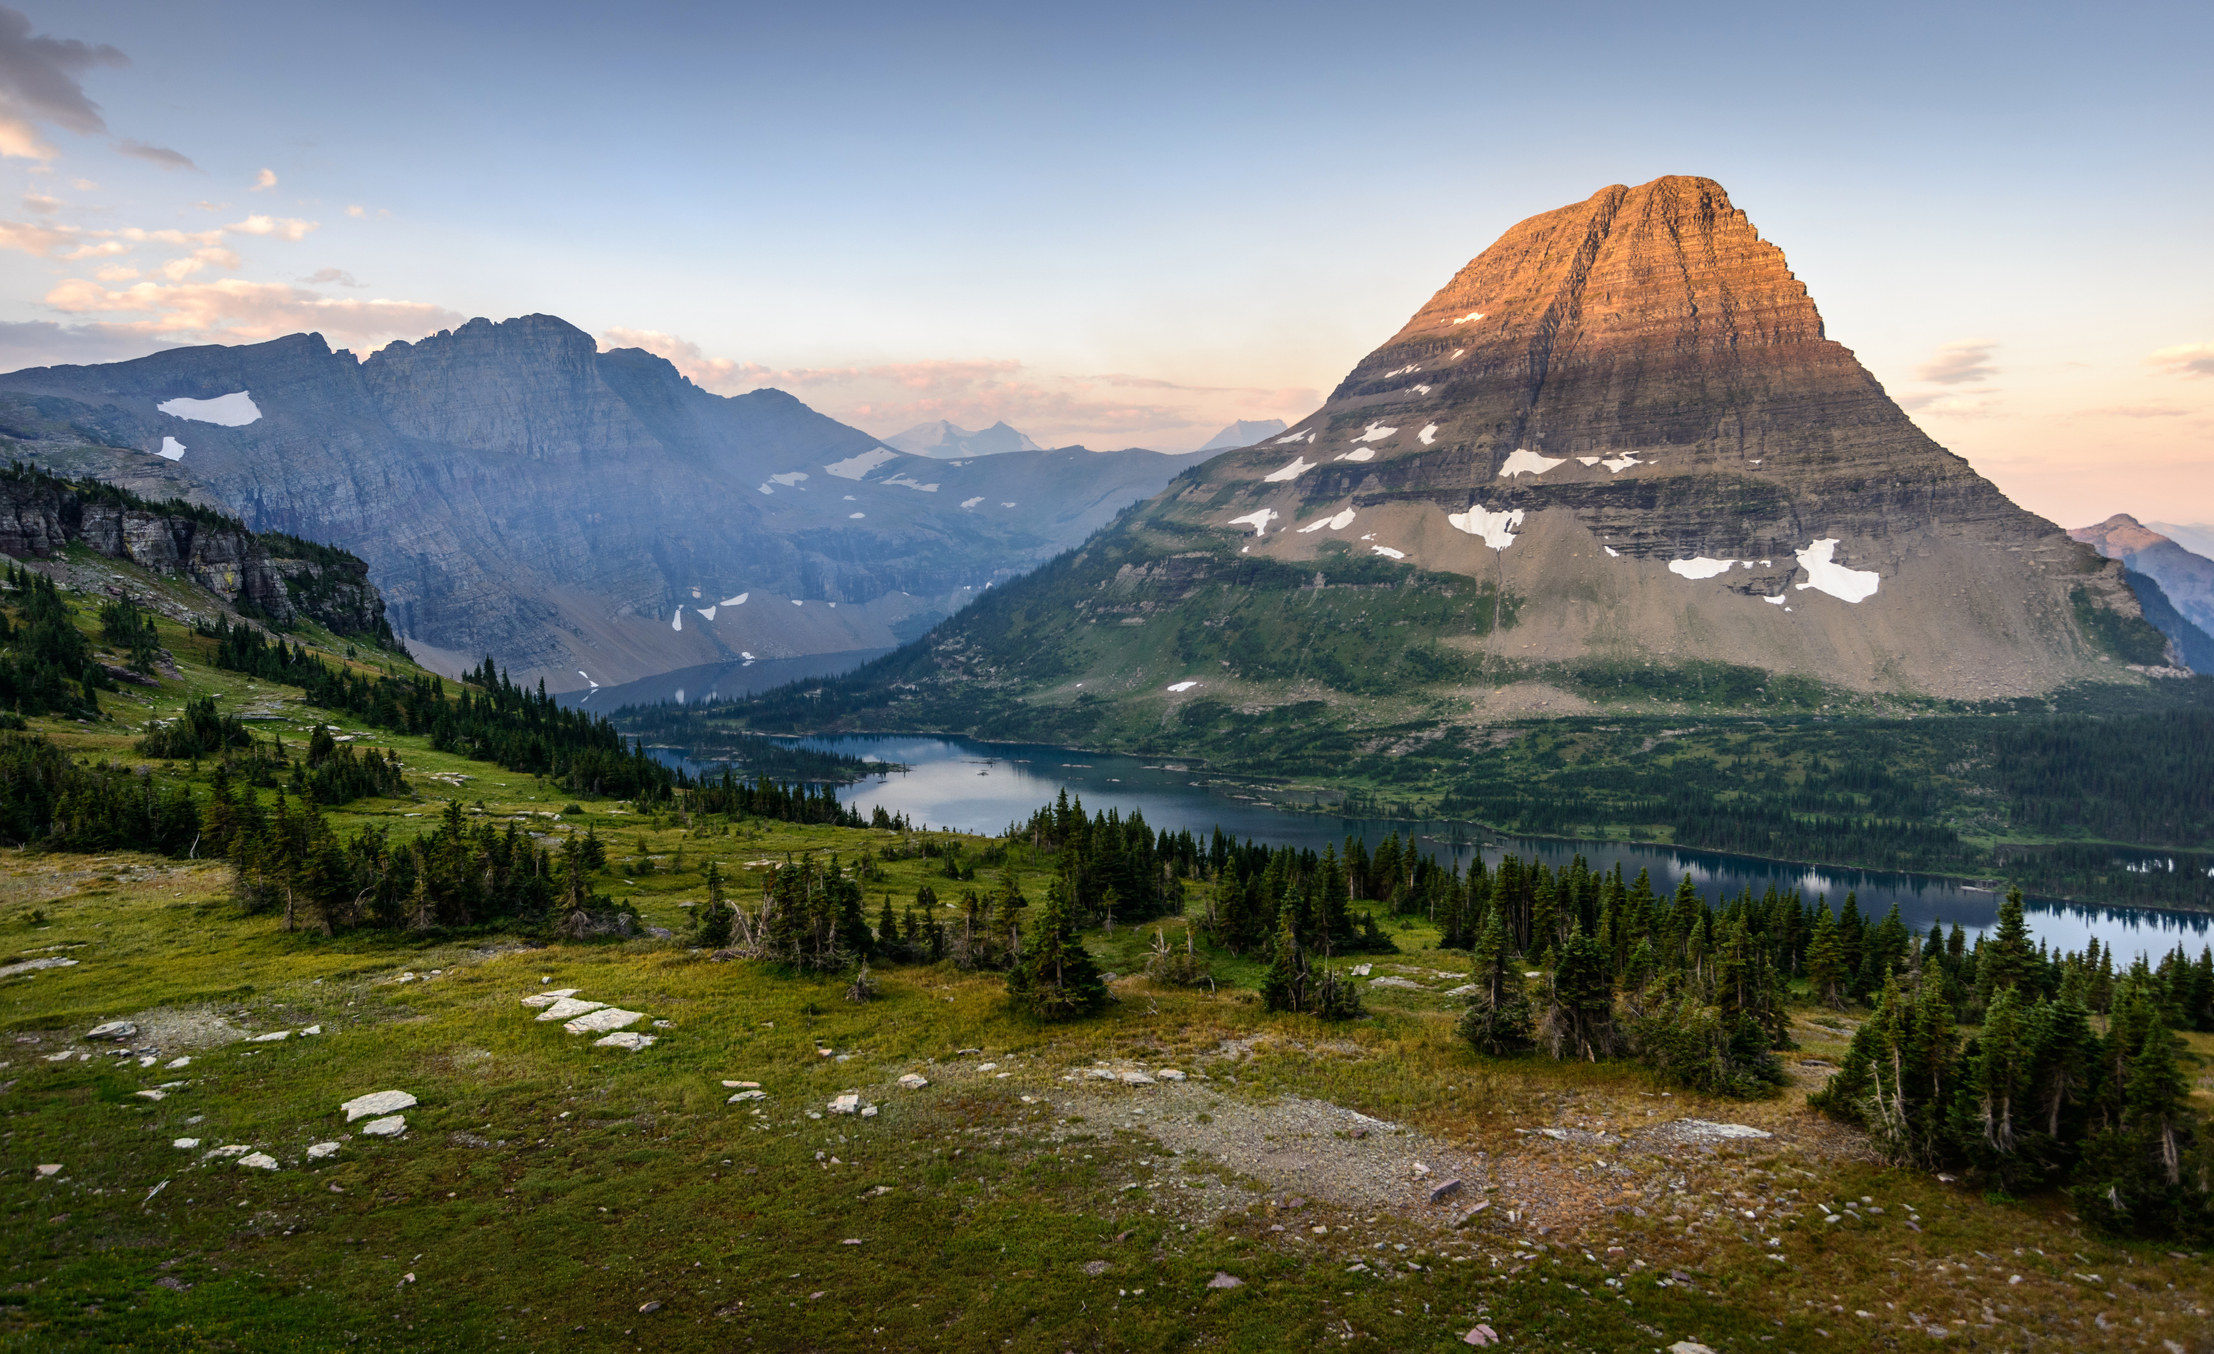 A wide shot of a cliff dotted with trees overlooking a lake and a tall mountain in Glacier National Park